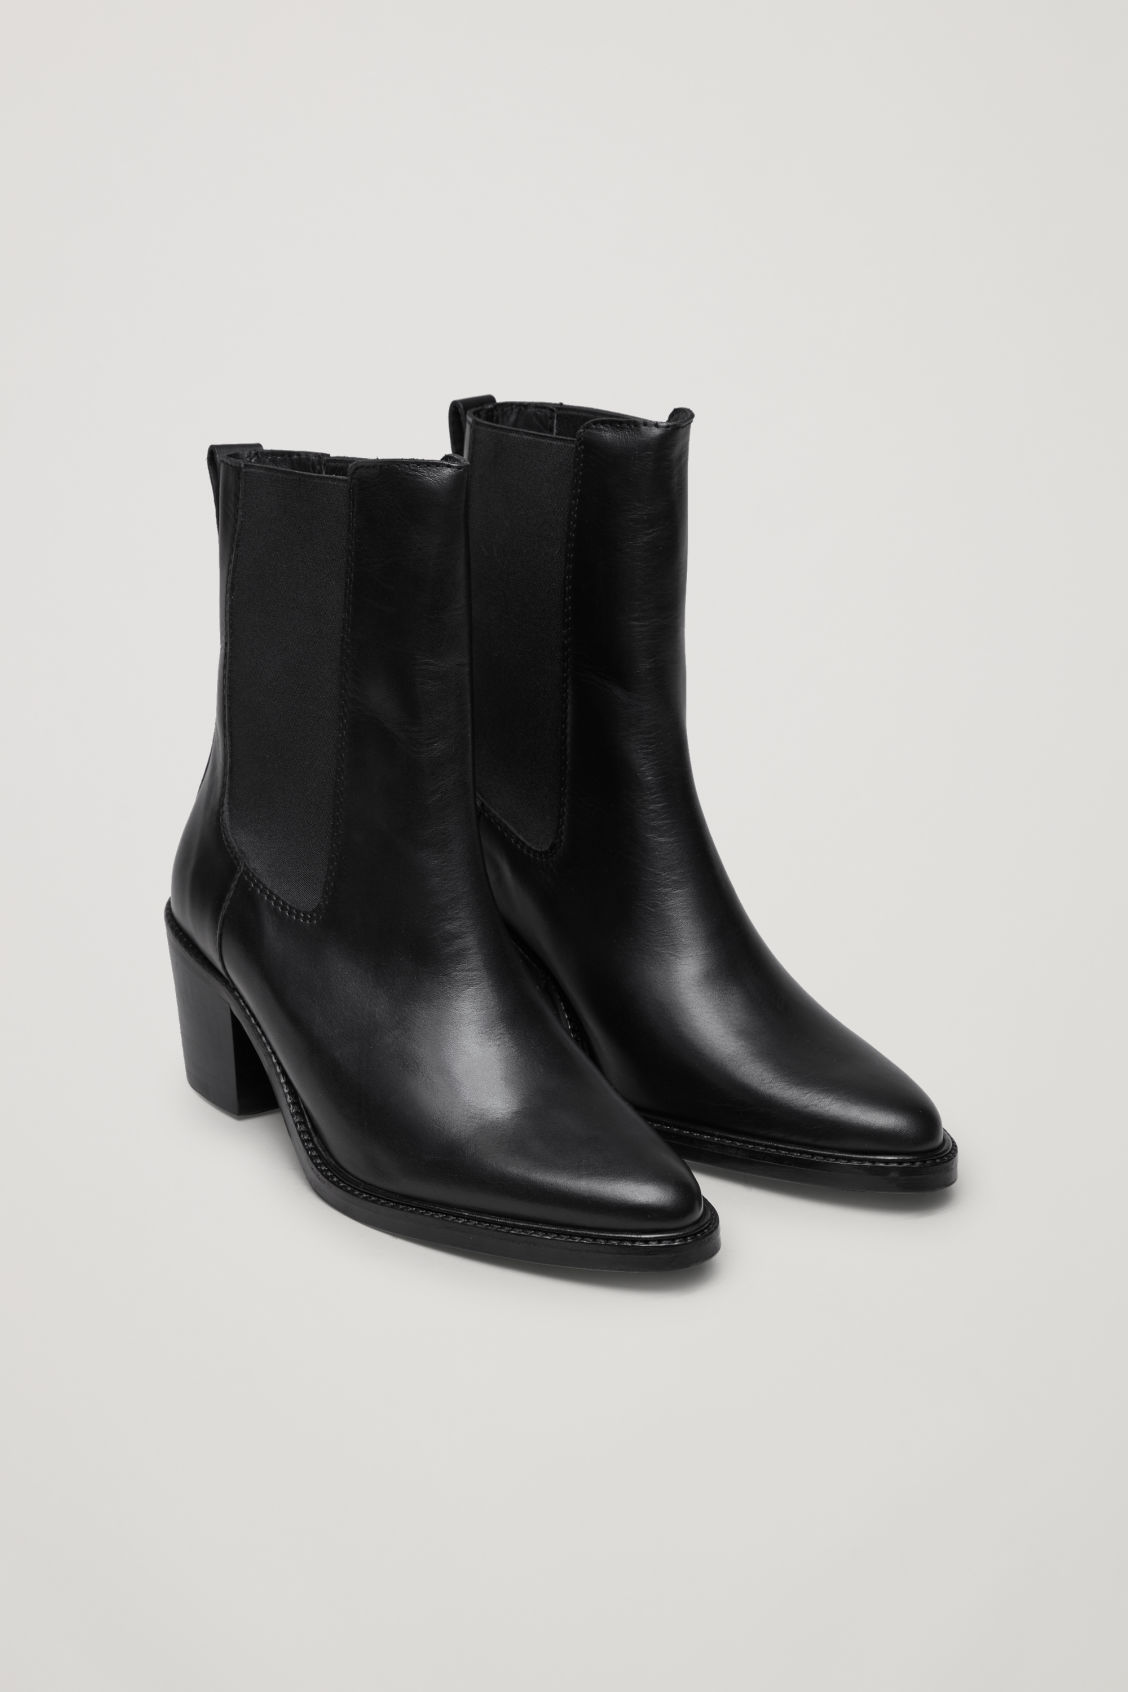 Tall Leather Chelsea Boots in Black from COS